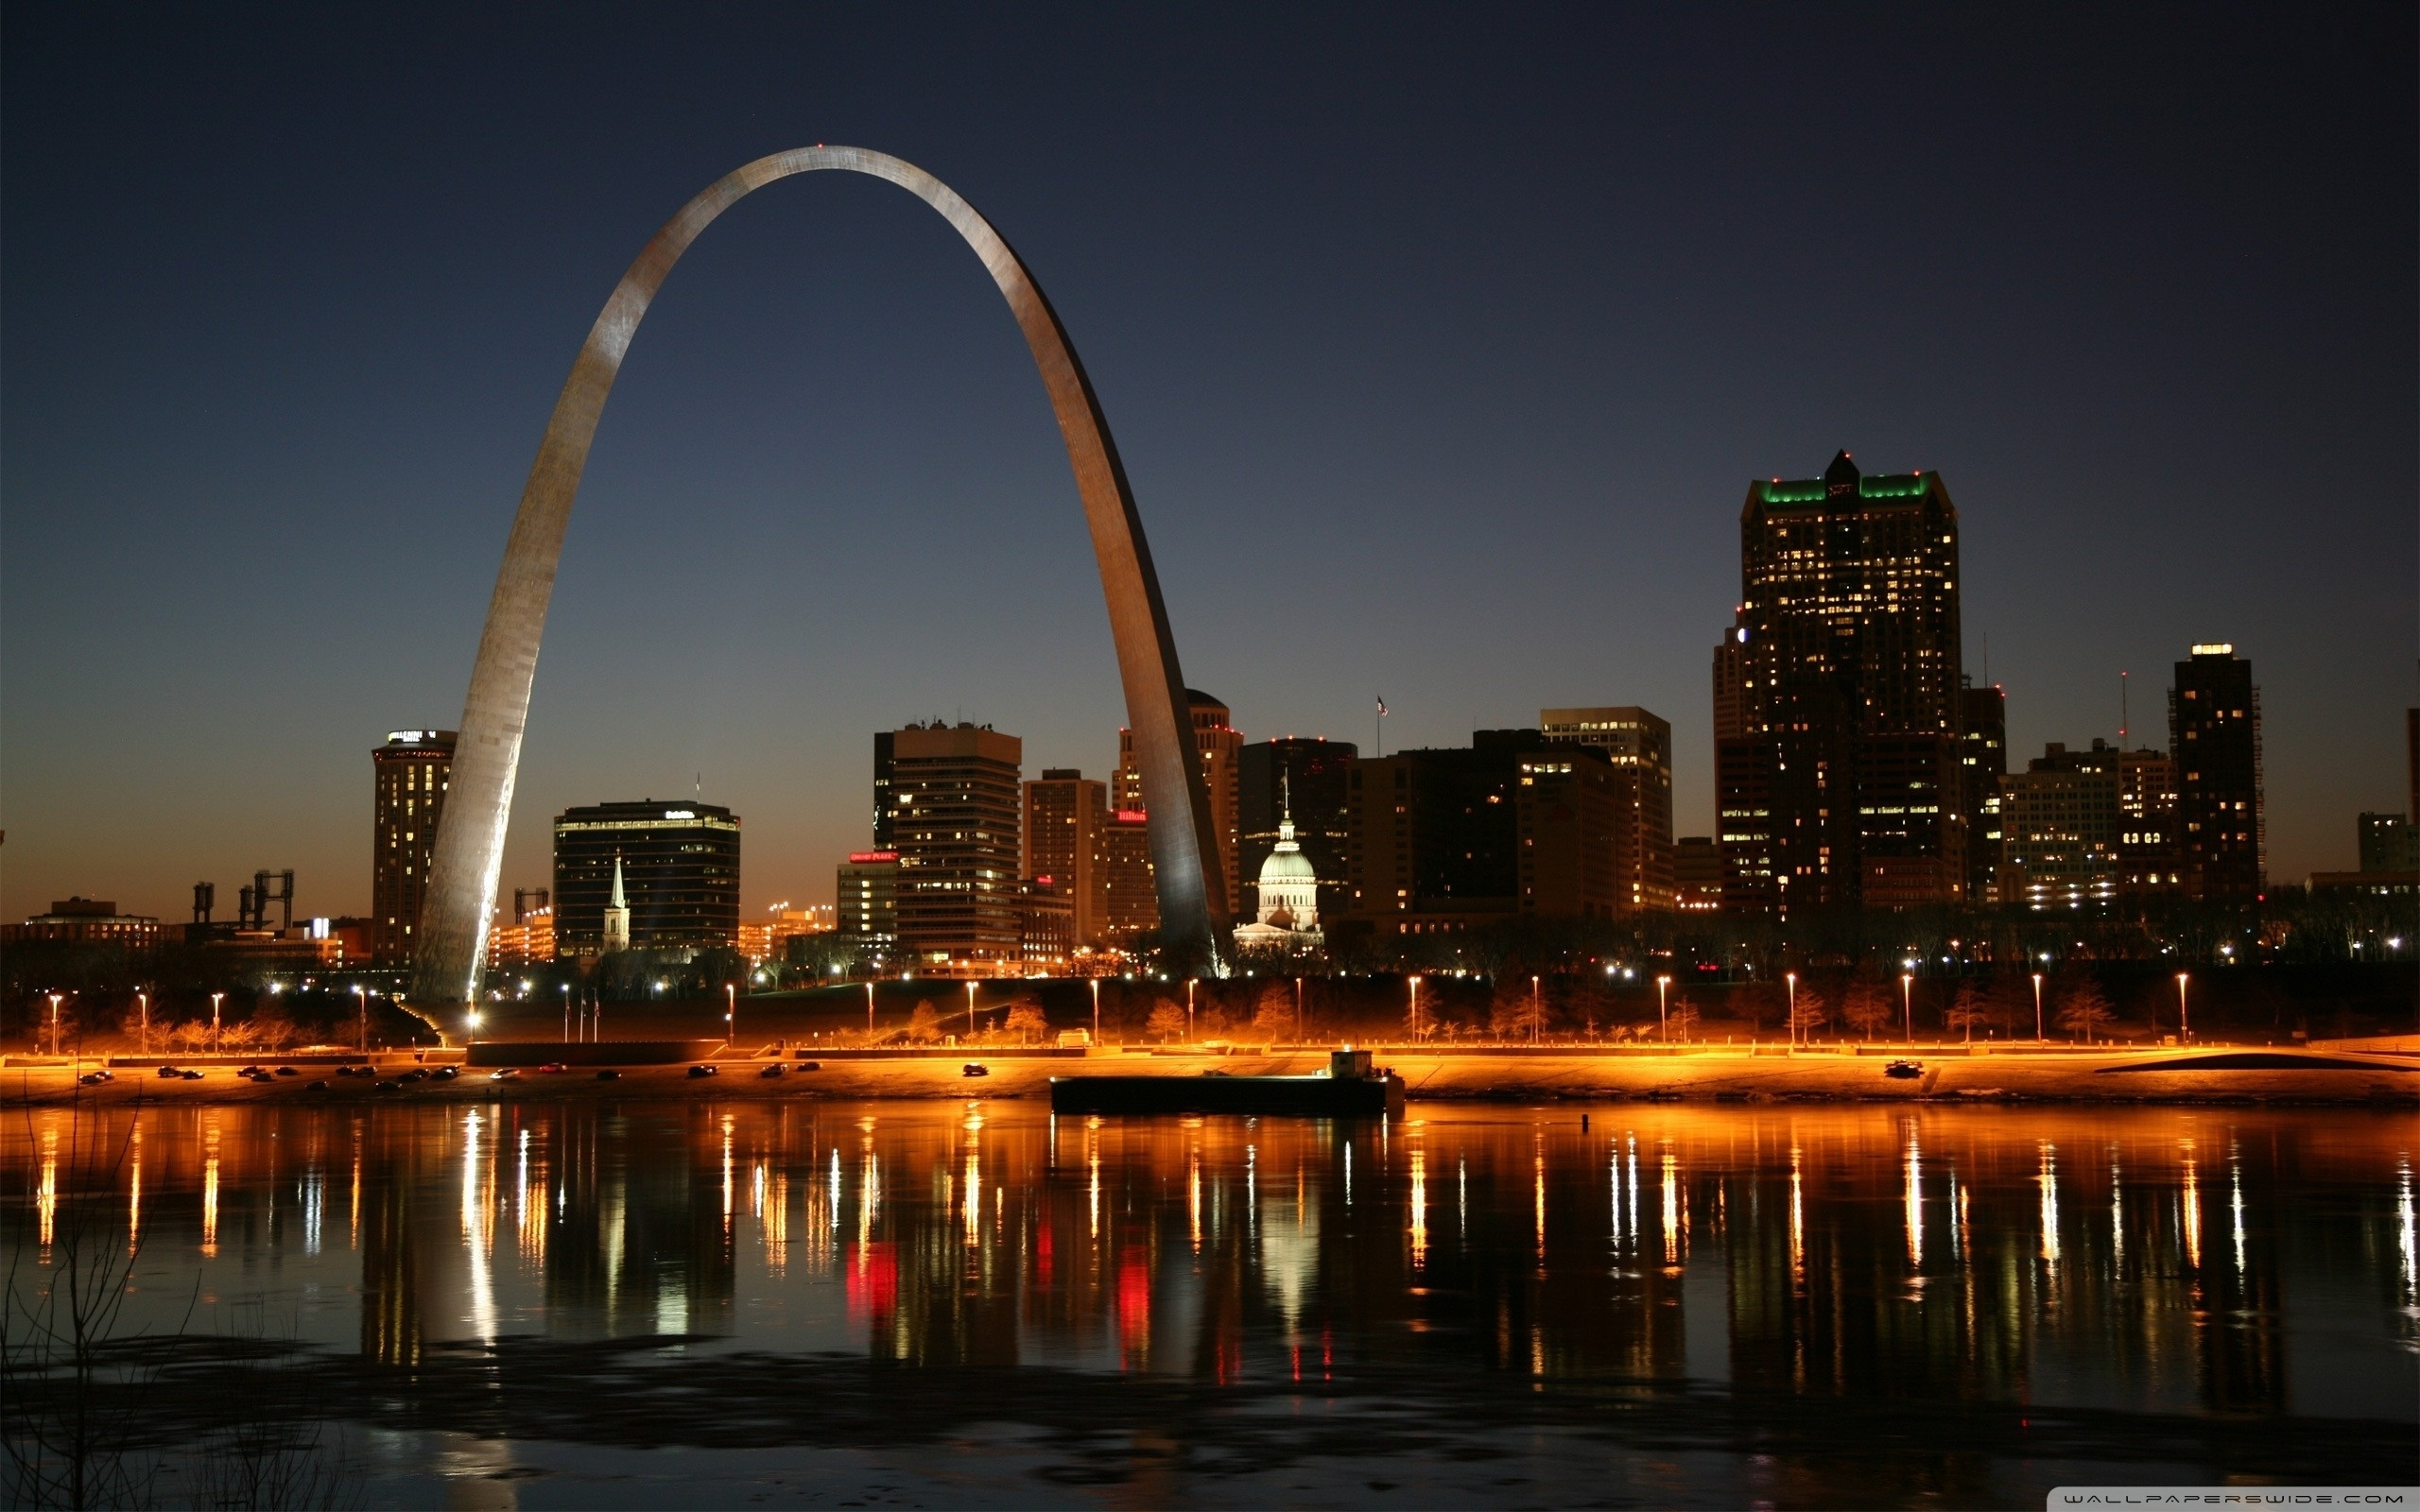 10 New St. Louis Wallpaper FULL HD 1920×1080 For PC Background